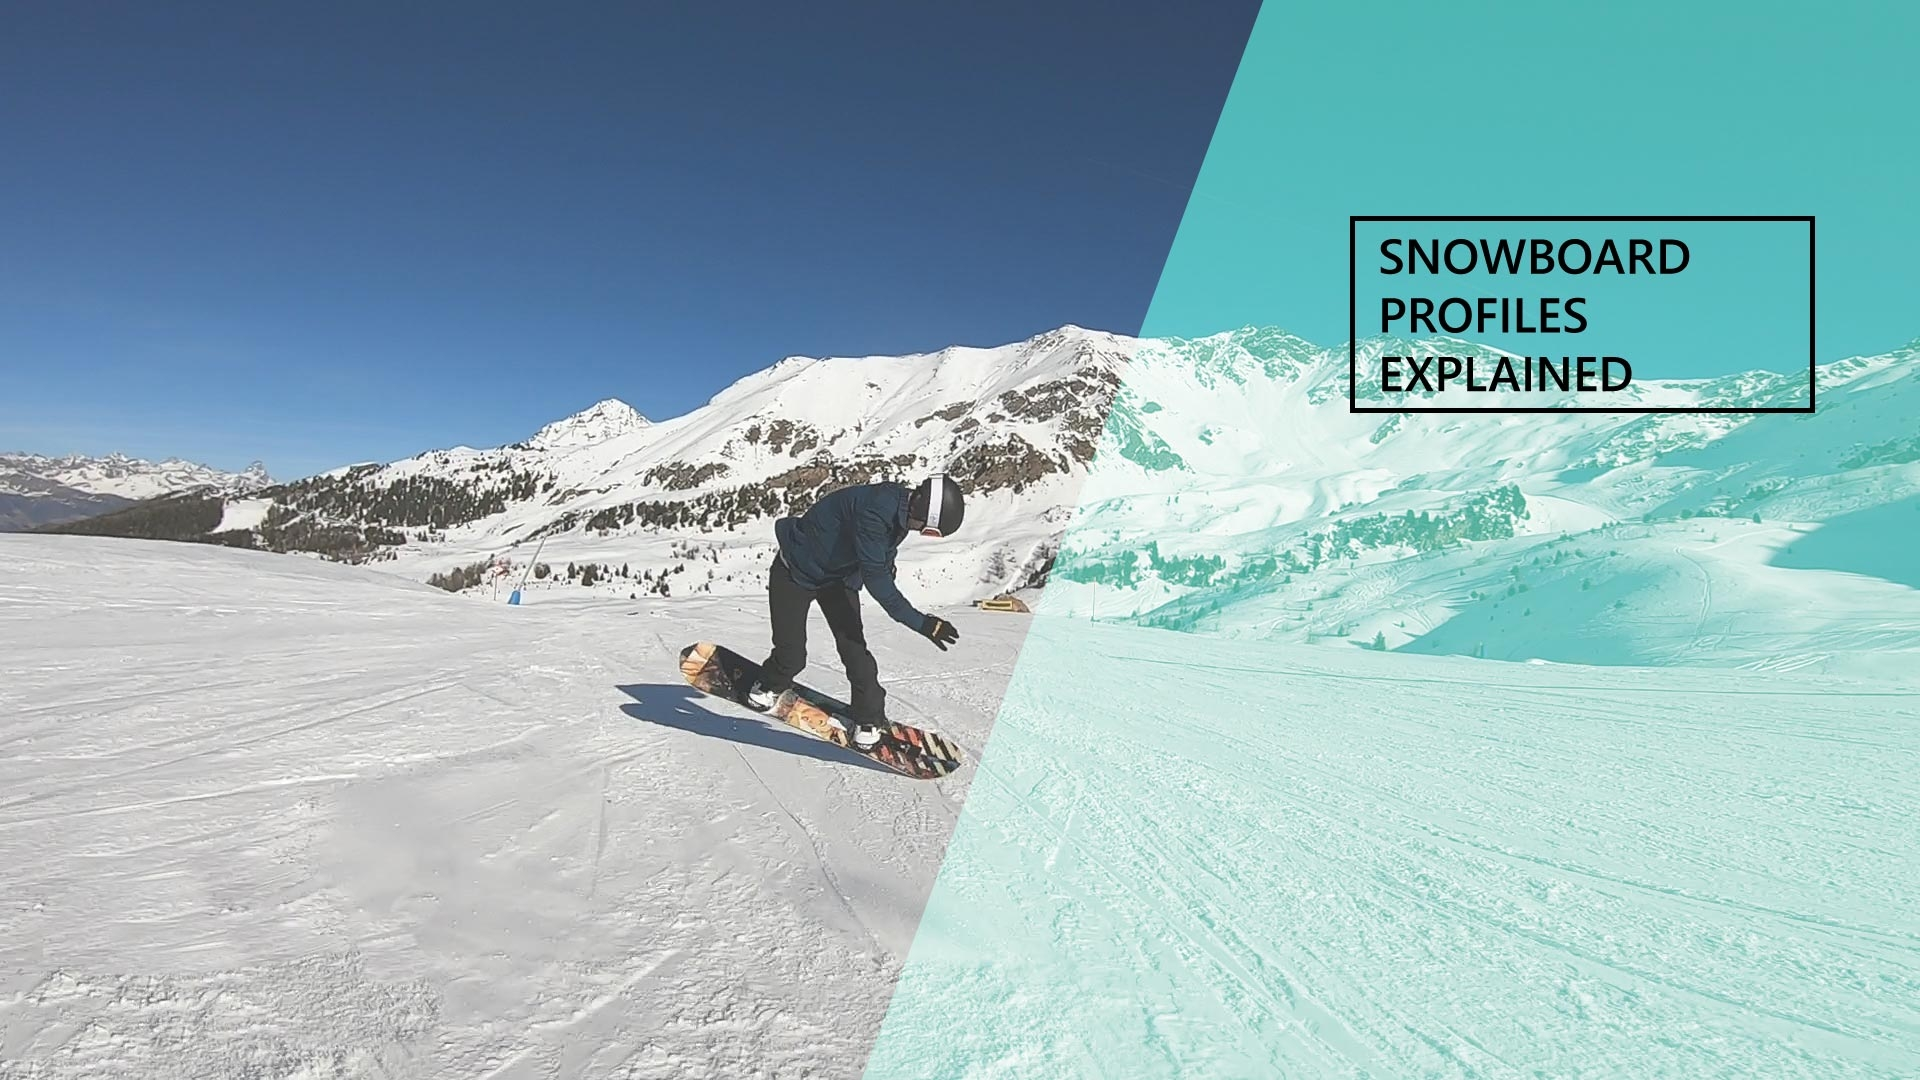 Snowboard Profiles Explained!